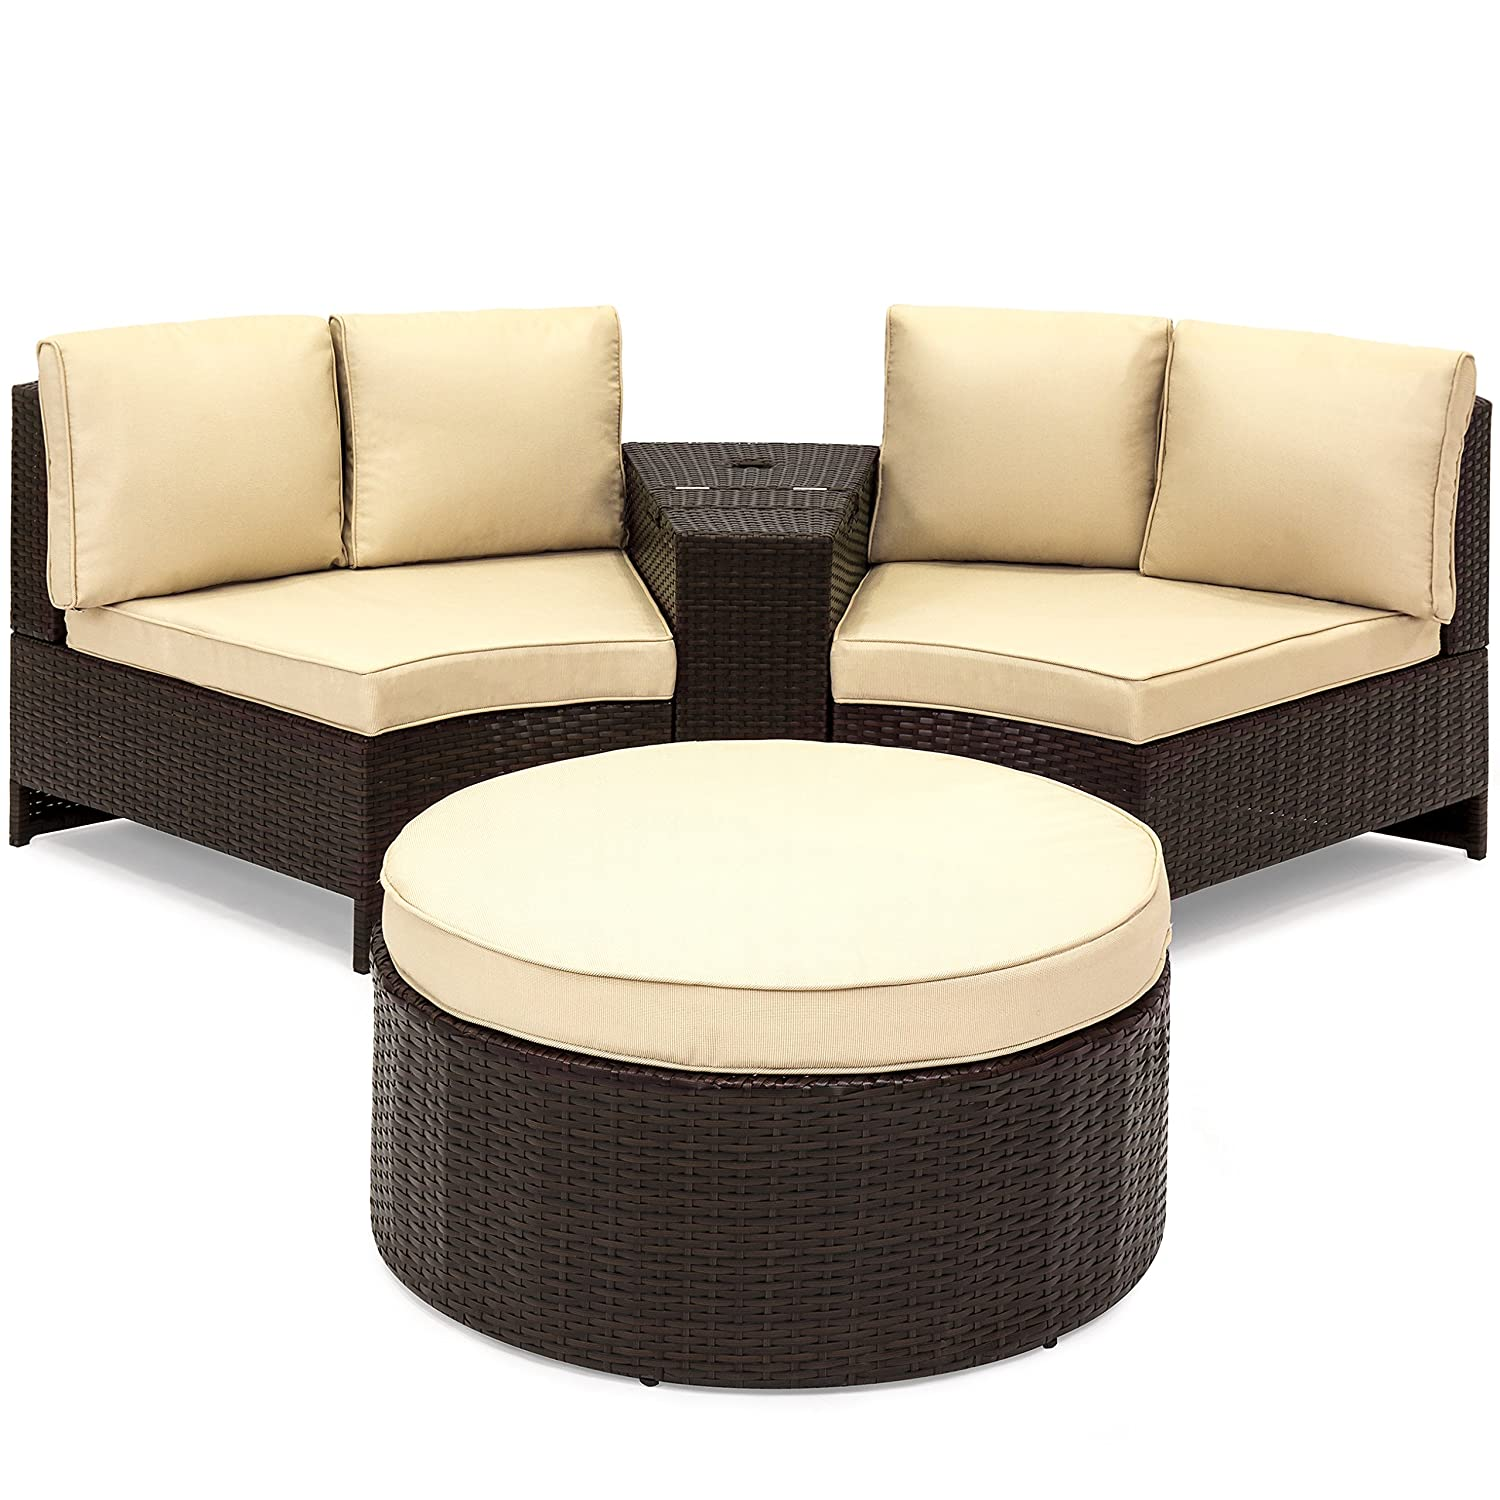 Tan and Brown Best Choice Products Wicker Curved Corner Patio Sectional Set with Cushions and Round Ottoman Table